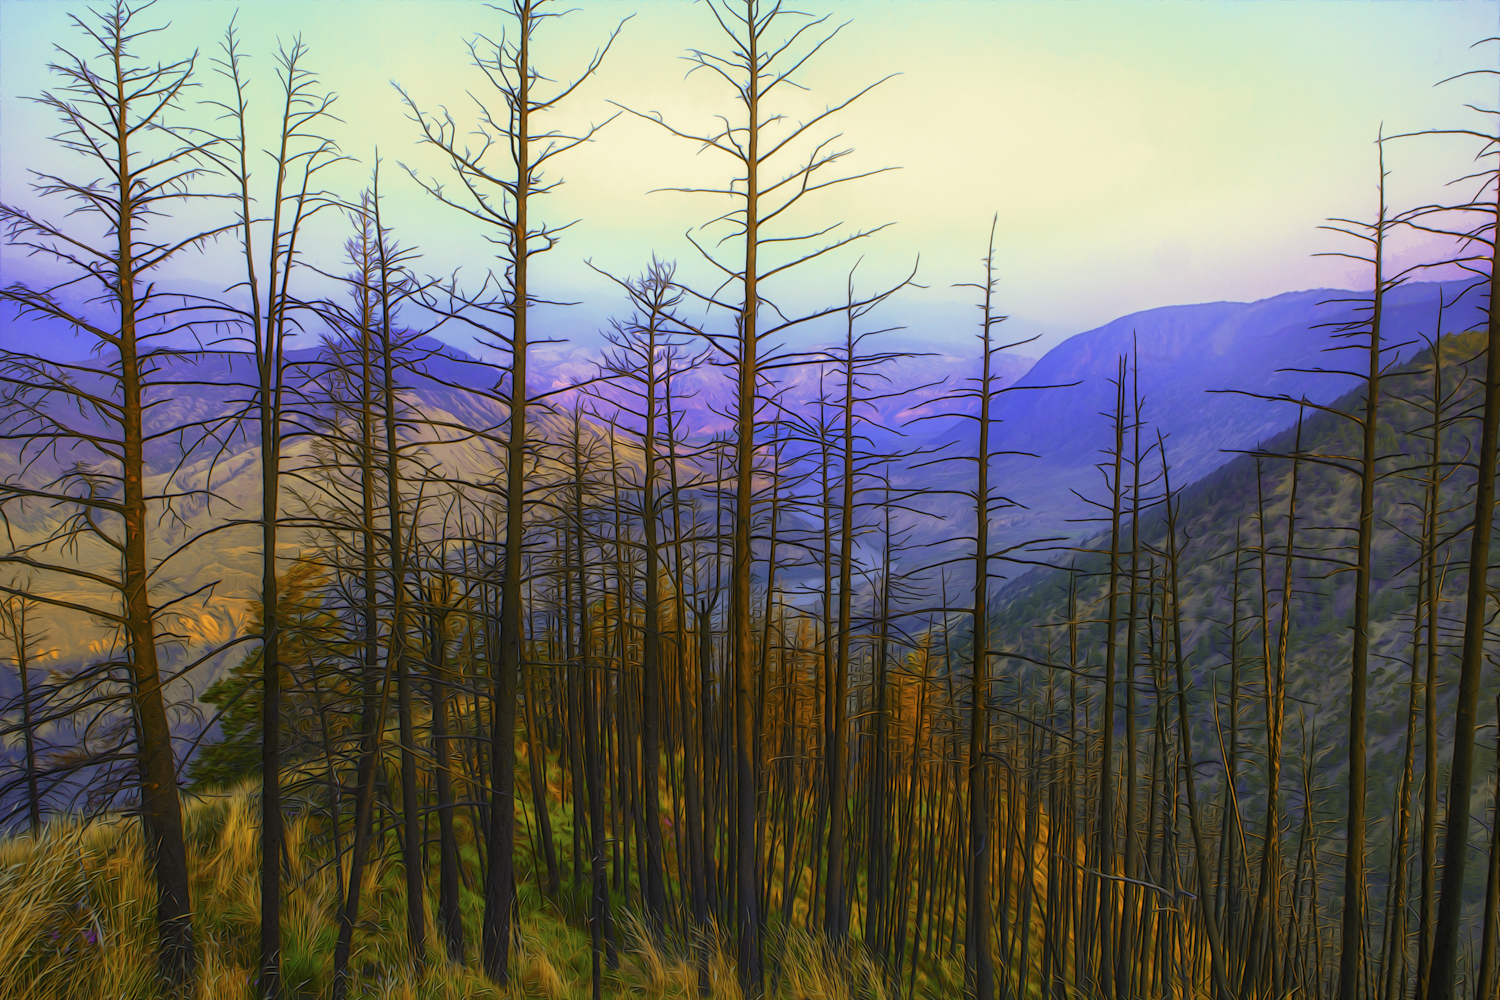 The Fraser River in the back ground of this burned off forest makes for an interesting graphic in this oversaturated image